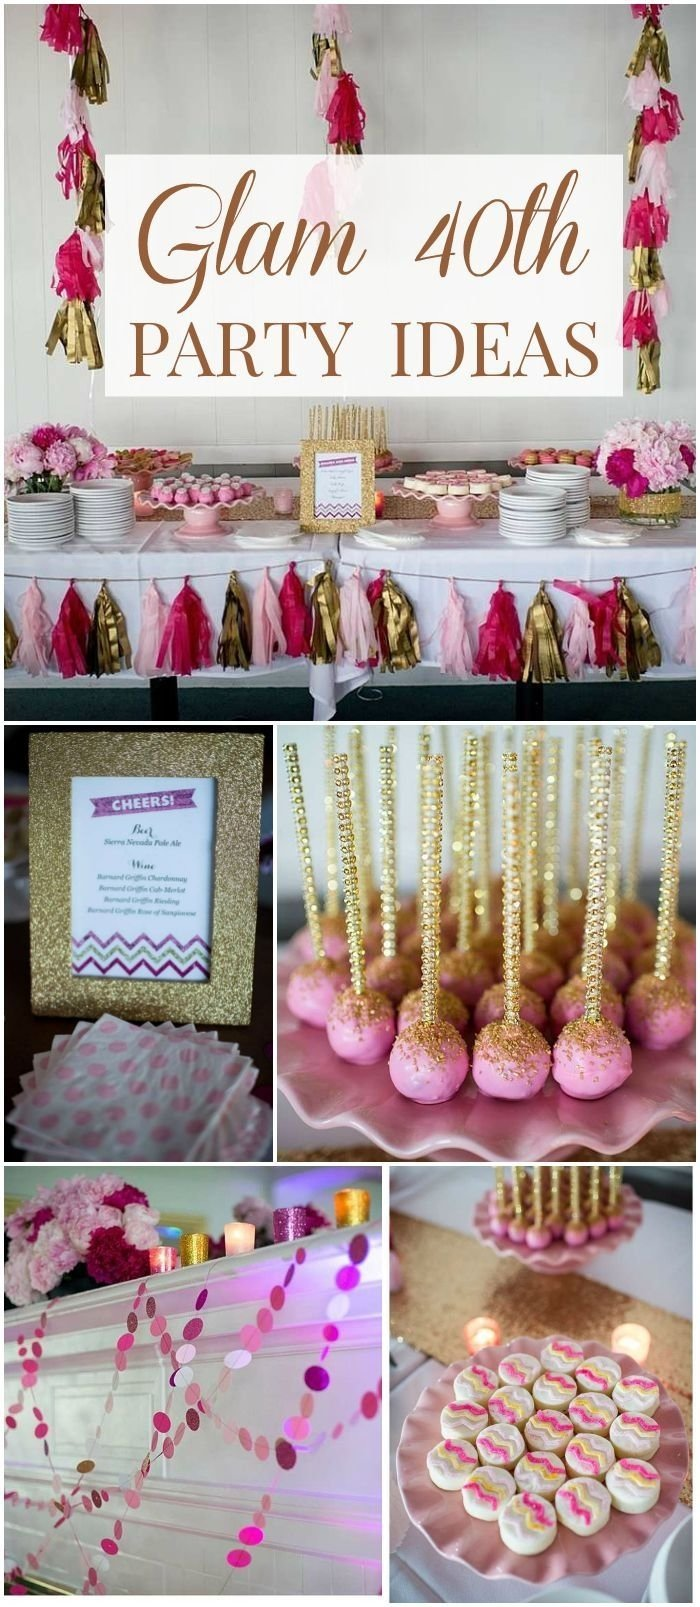 10 Most Popular Ideas For A 40Th Birthday Party glam 40th birthday party birthday a glam 40th birthday party 4 2020